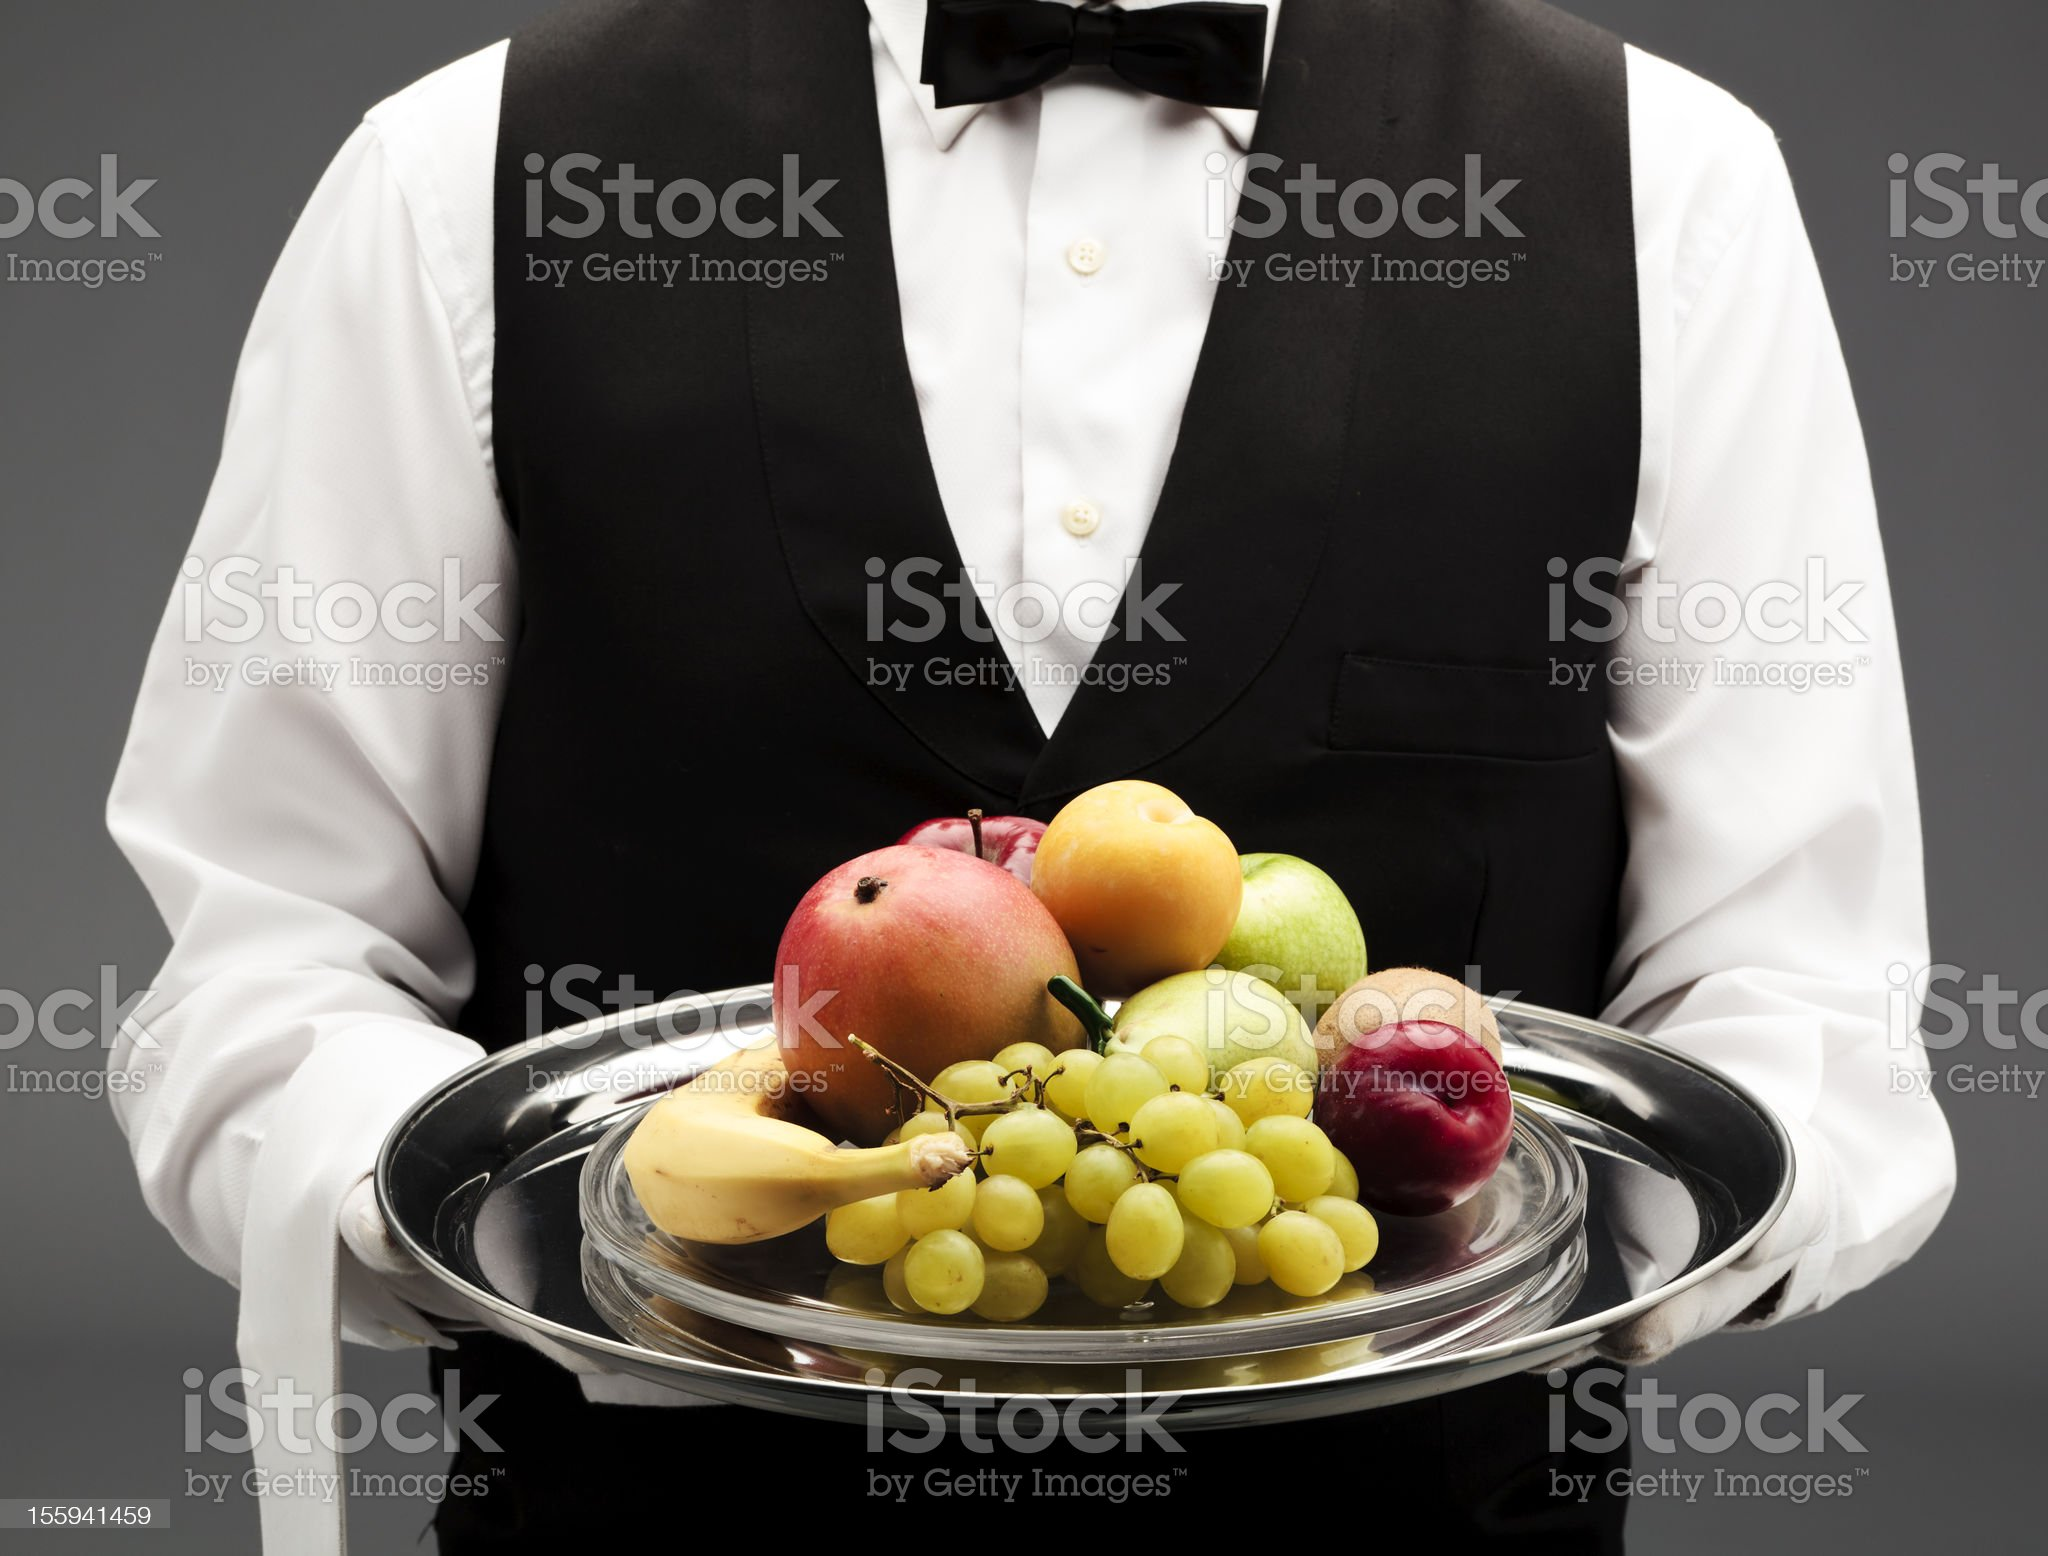 fruits on tray royalty-free stock photo